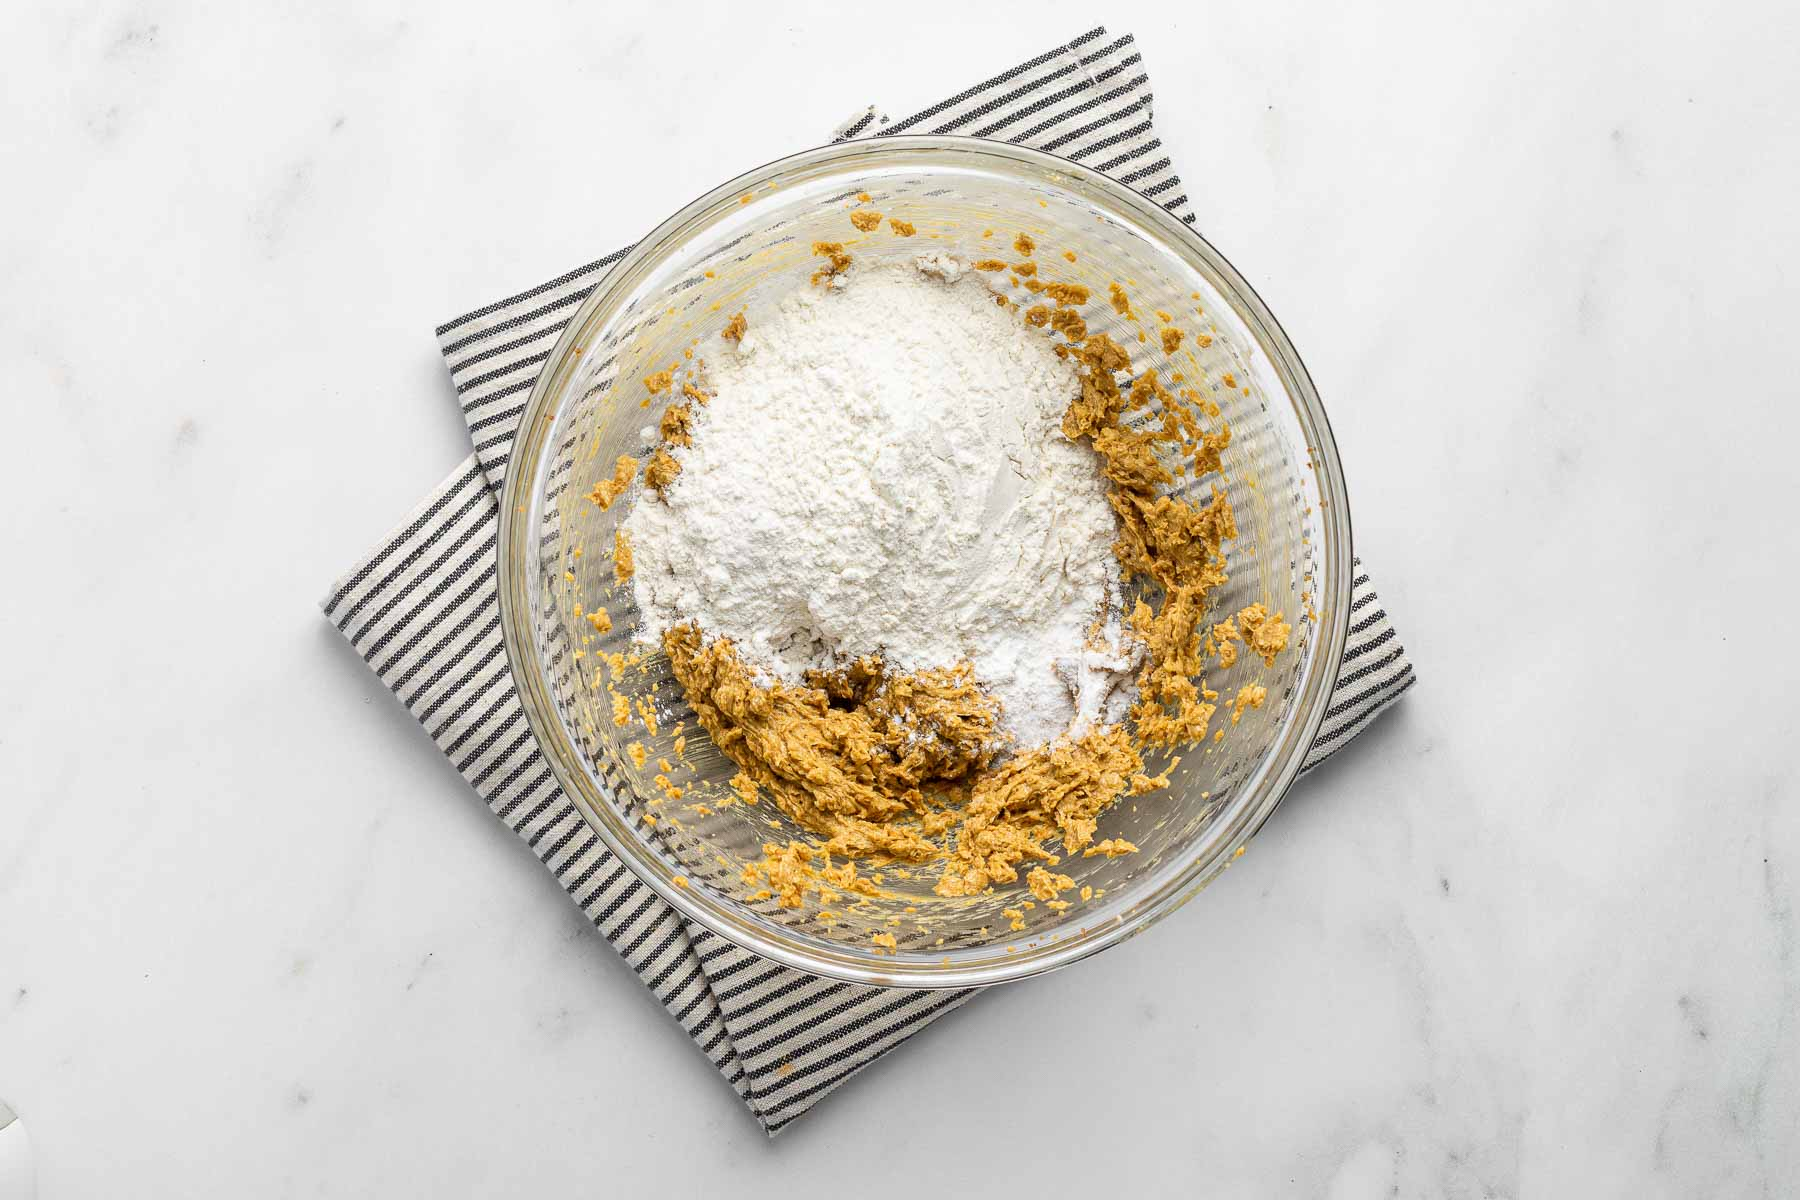 Flour over cookie dough in a glass bowl.